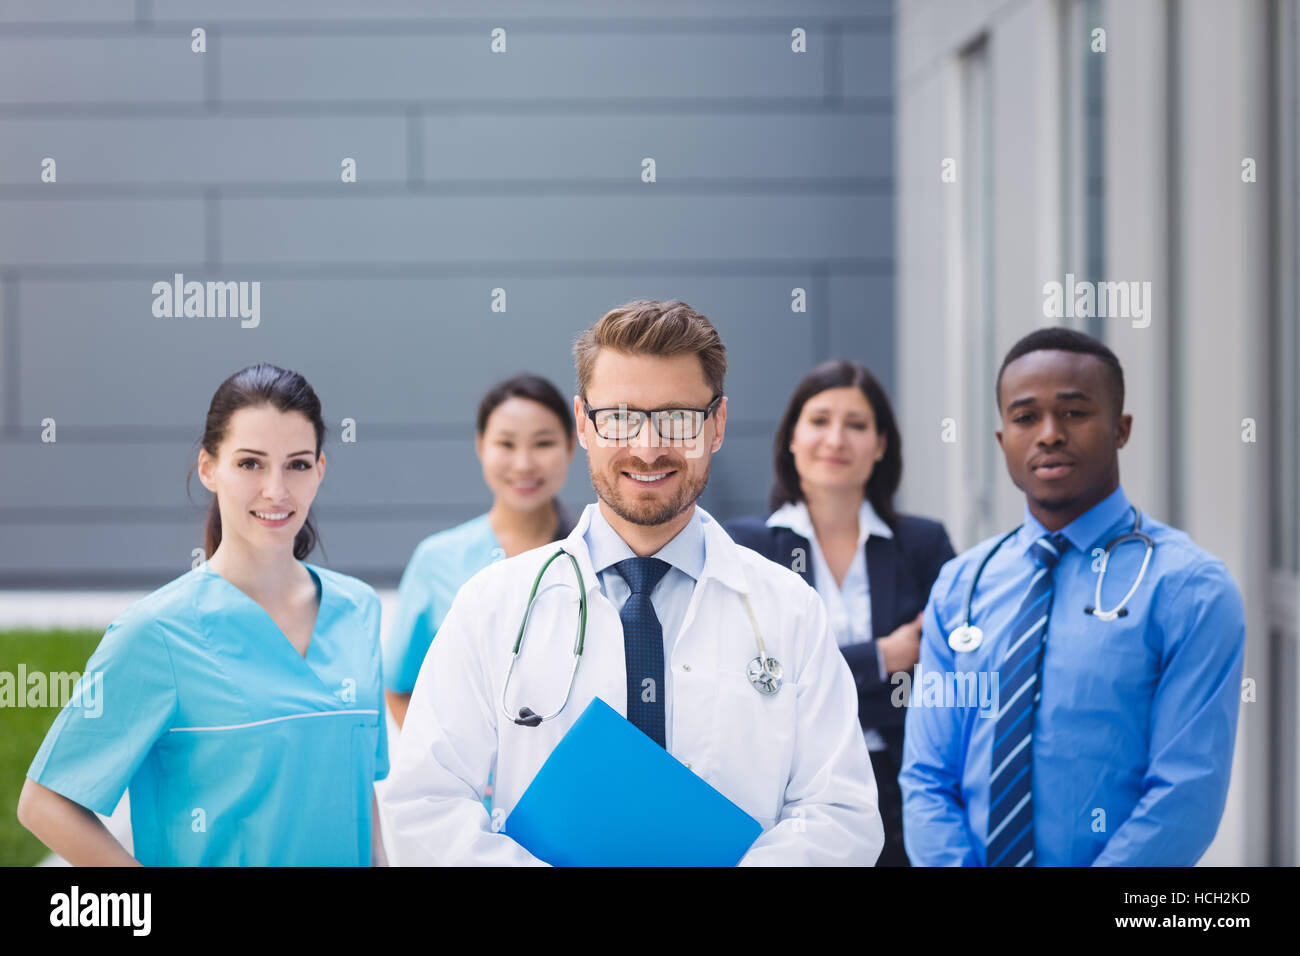 Team of doctors standing together in hospital premises - Stock Image